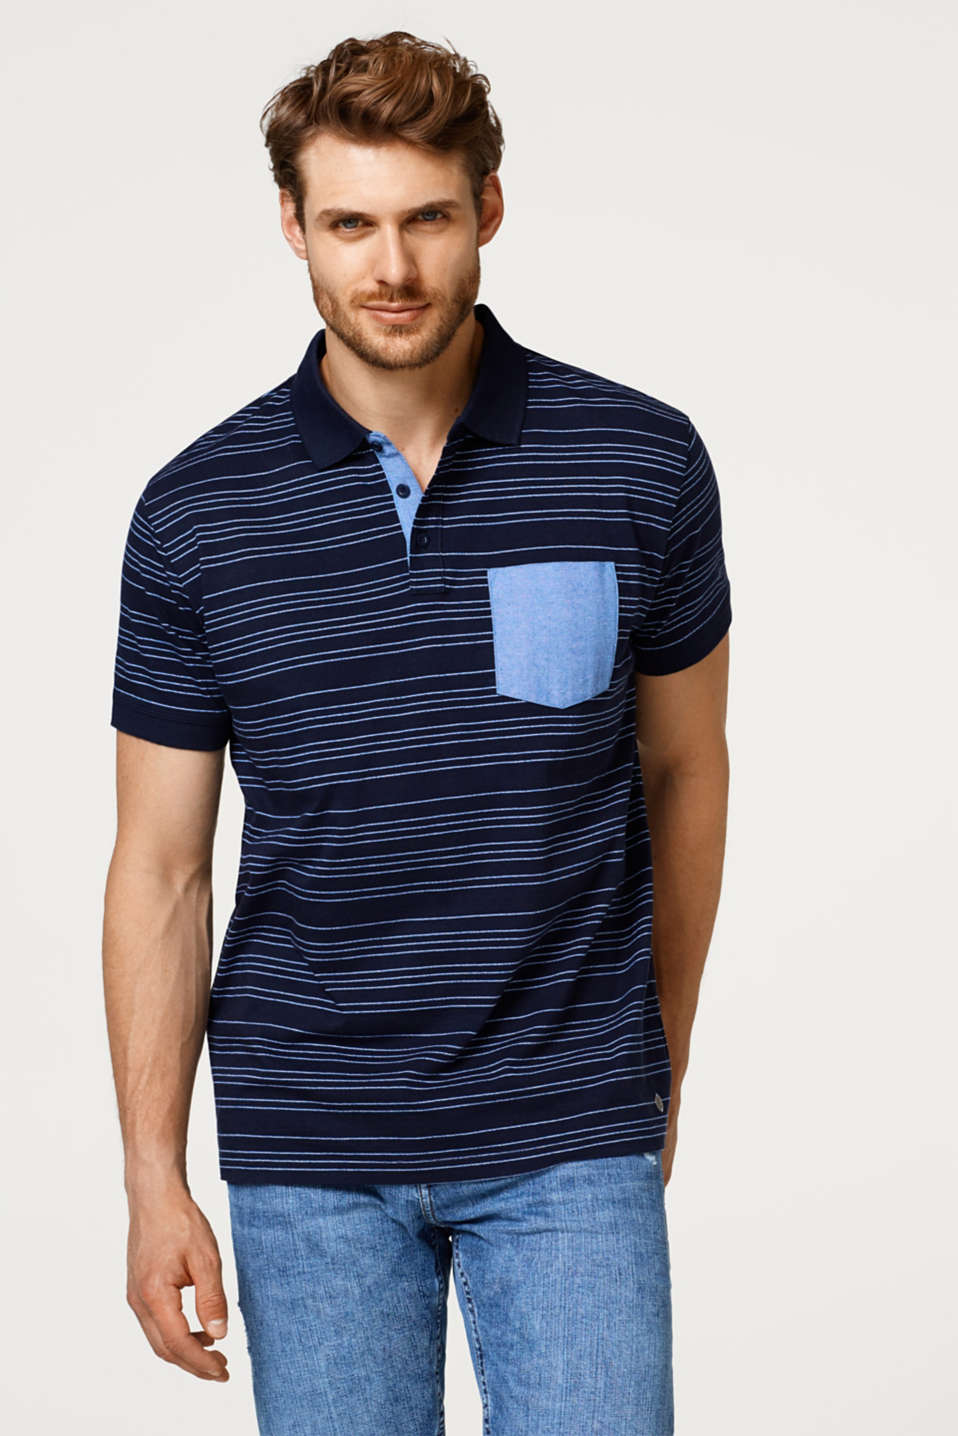 Esprit - Jersey polo shirt with stripes, 100% cotton